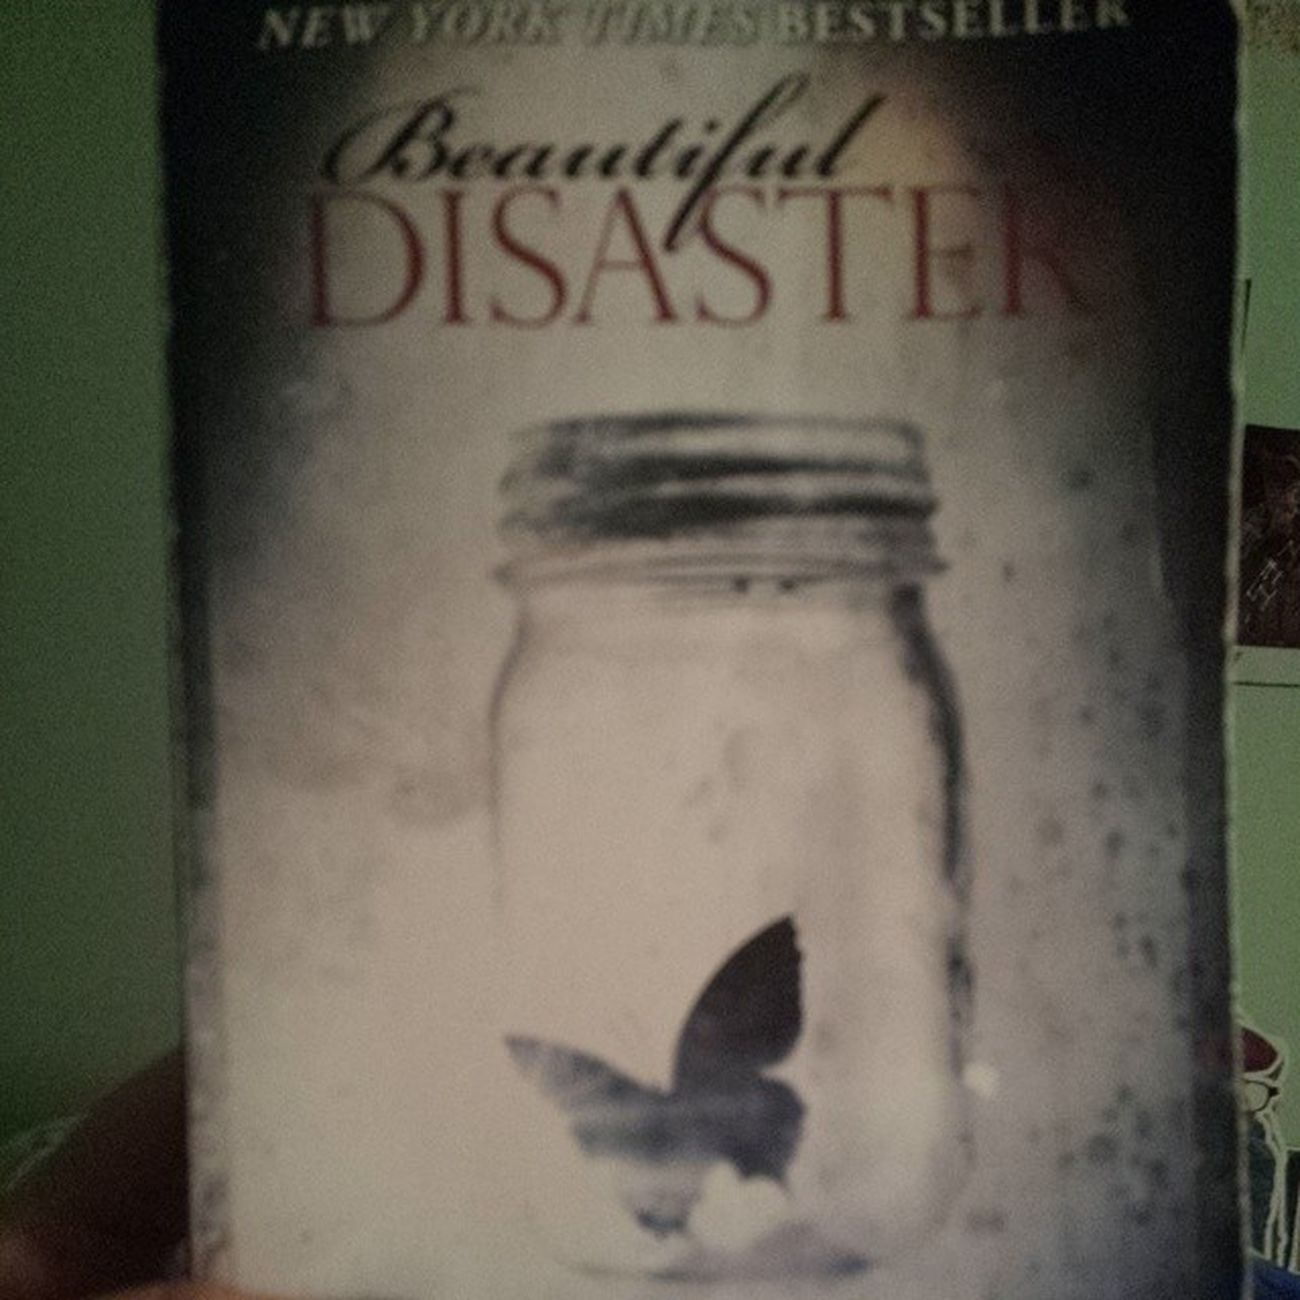 So I started reading this book today and just finished it man it must have been good. :) BeautifulDisaster JamieMcGuire Goodbooks Beautifuldisasterkindamylifestory latenightreading sleeplessnights hey go listen to thirteen reasons there pretty amazing. goyoutube rightmeow randomhashtags fyc